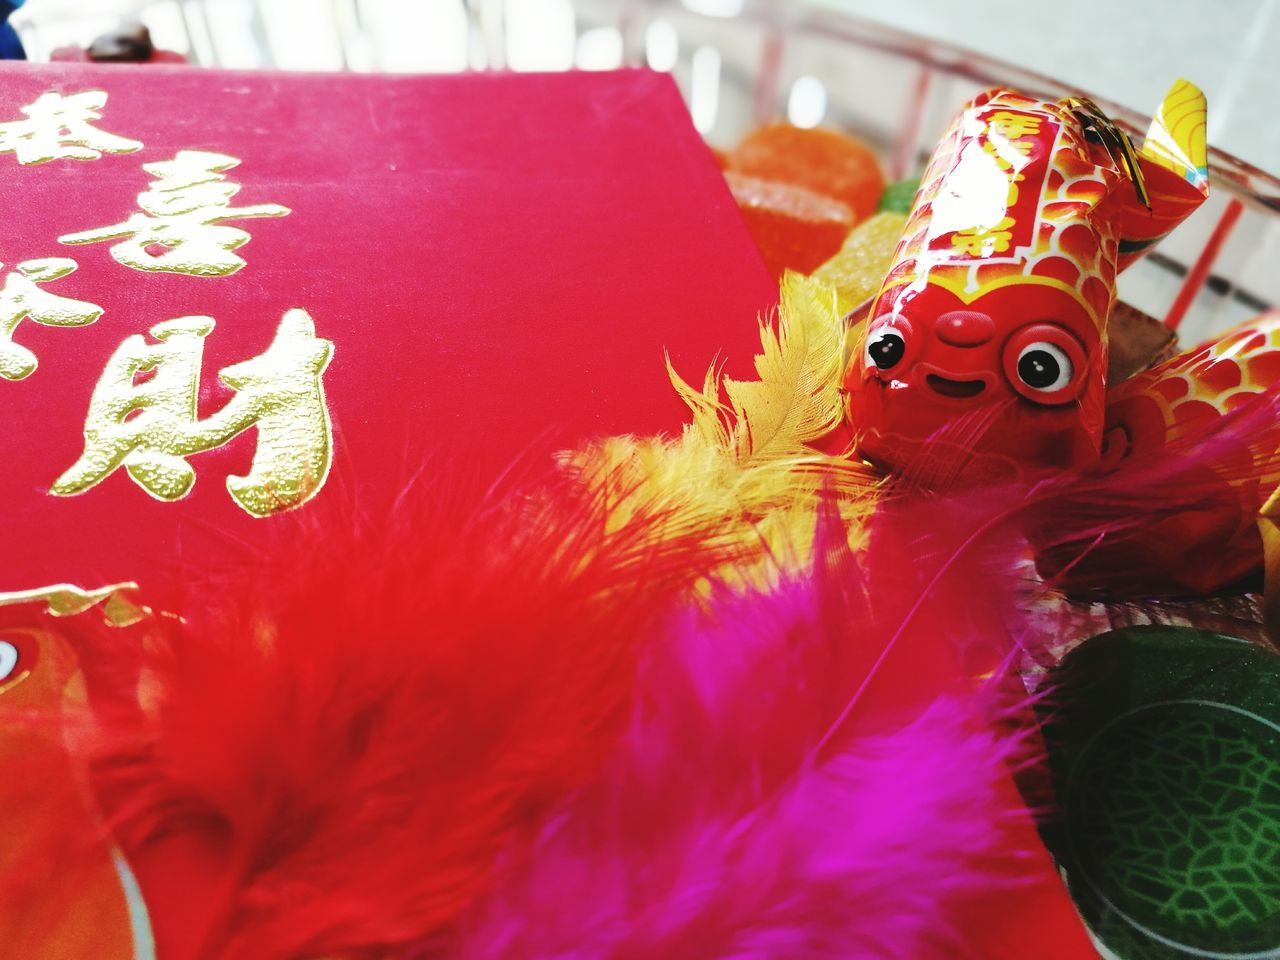 Red Animal Representation Chinese New Year Celebration Cultures Tradition No People Close-up Indoors  Colored Feathers Lunar New Year Red Packet Sweets Feathers♡ Candies! Gold Lettering Setting The Table Fish Full Frame